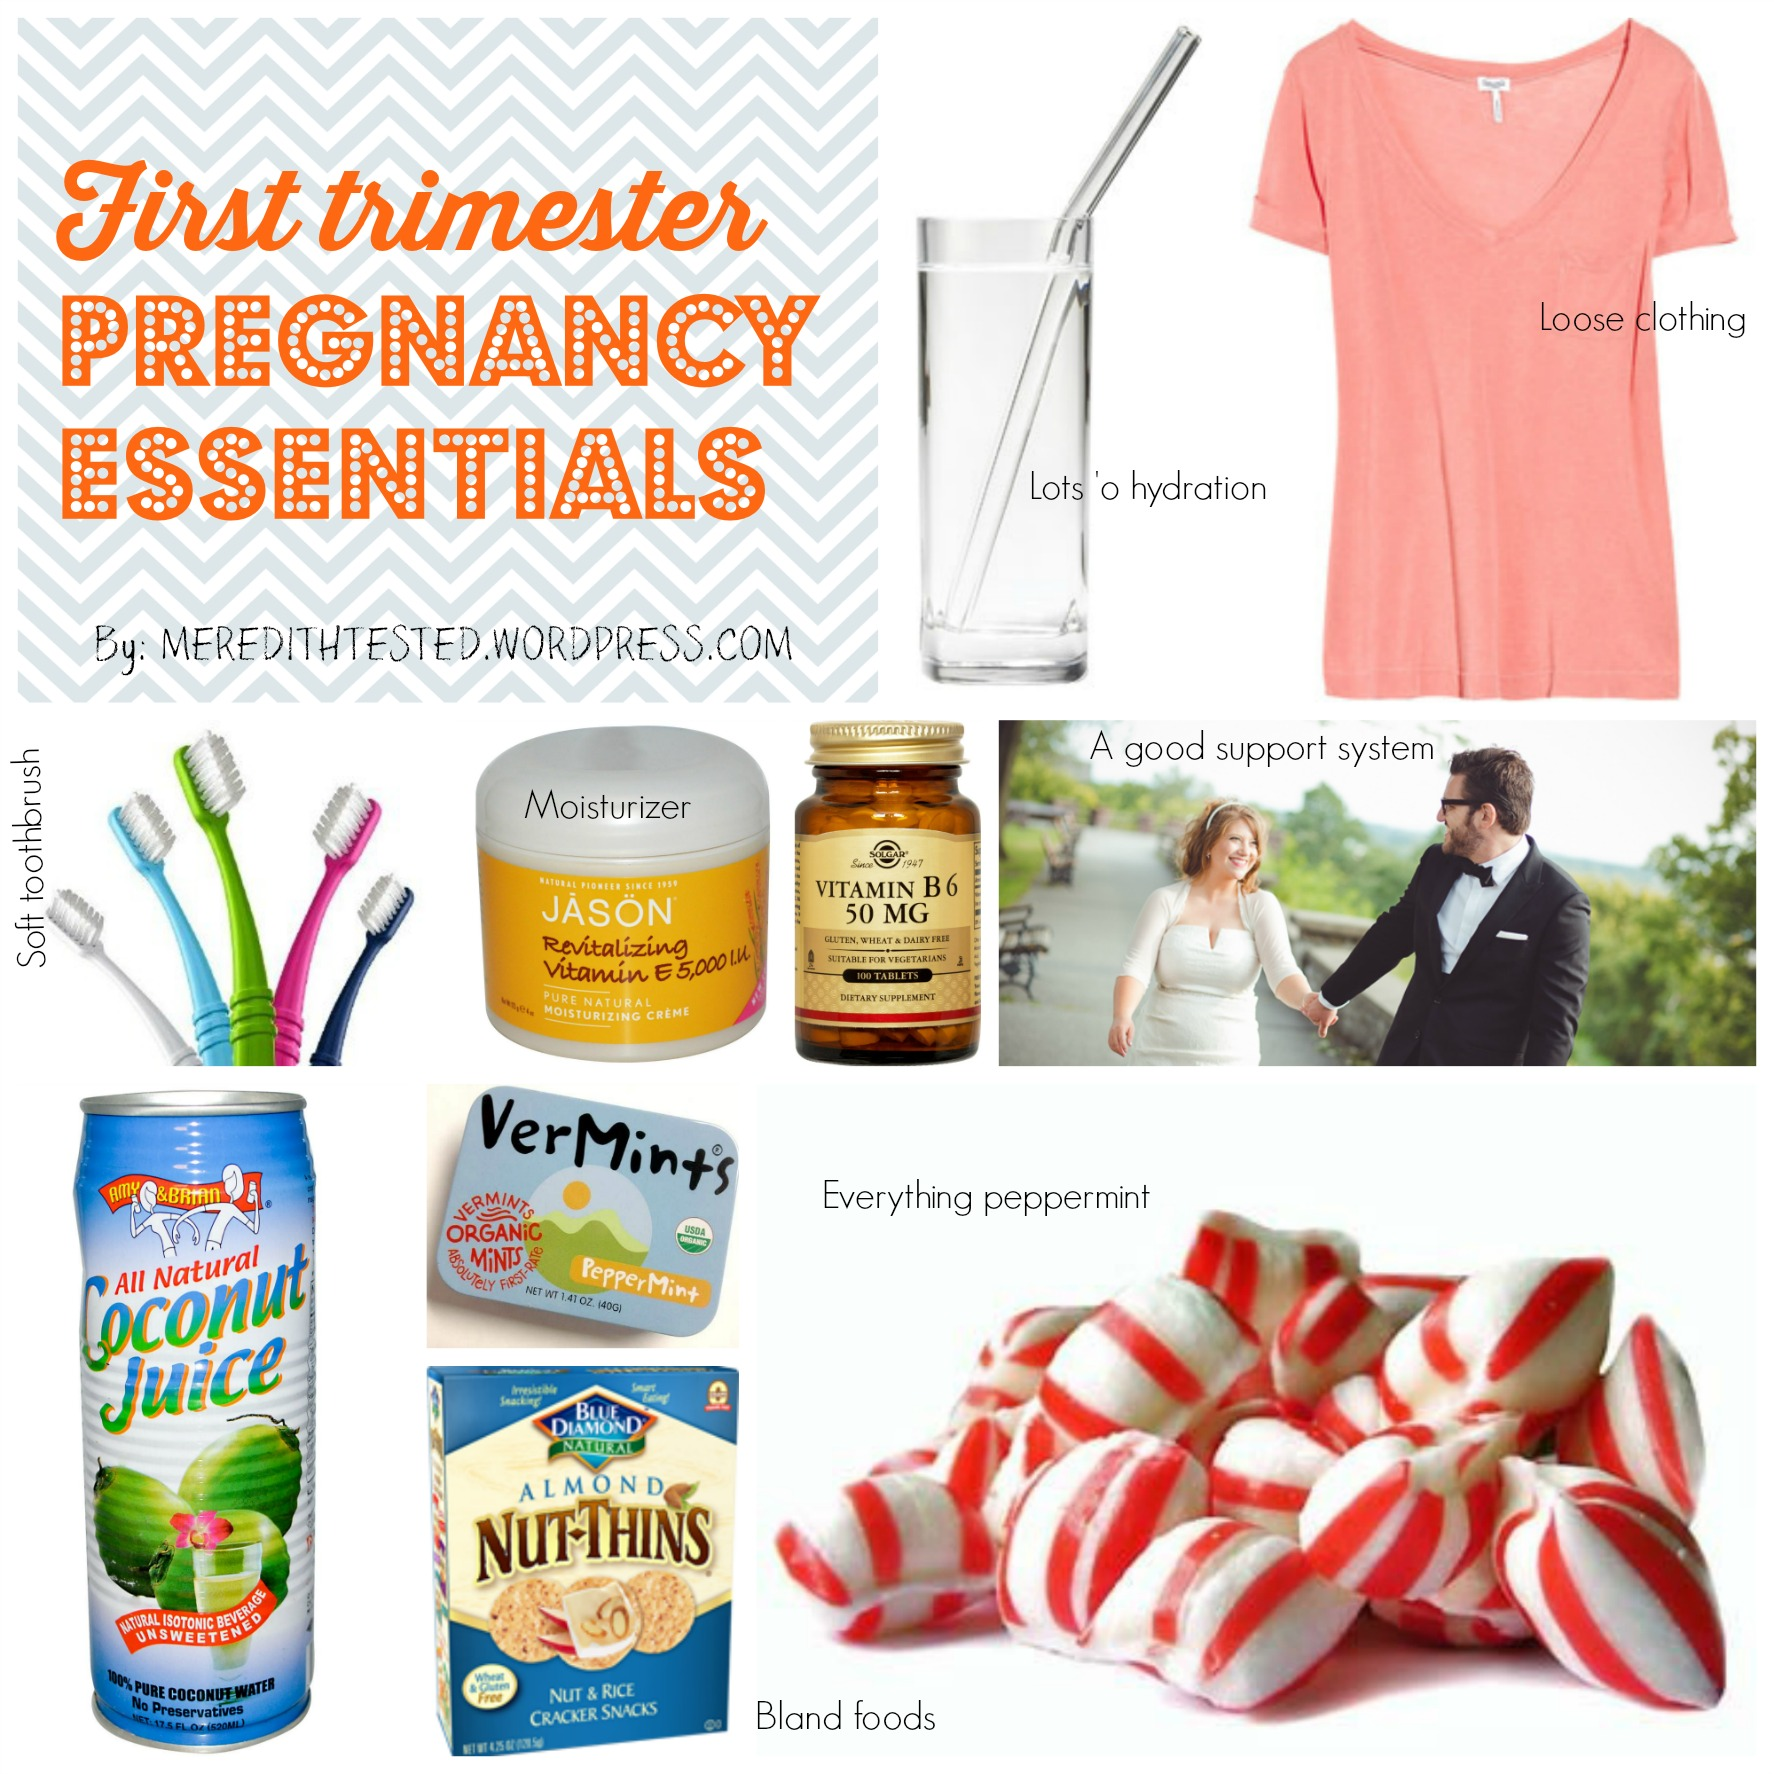 Food To Eat During St Trimester Of Pregnancy